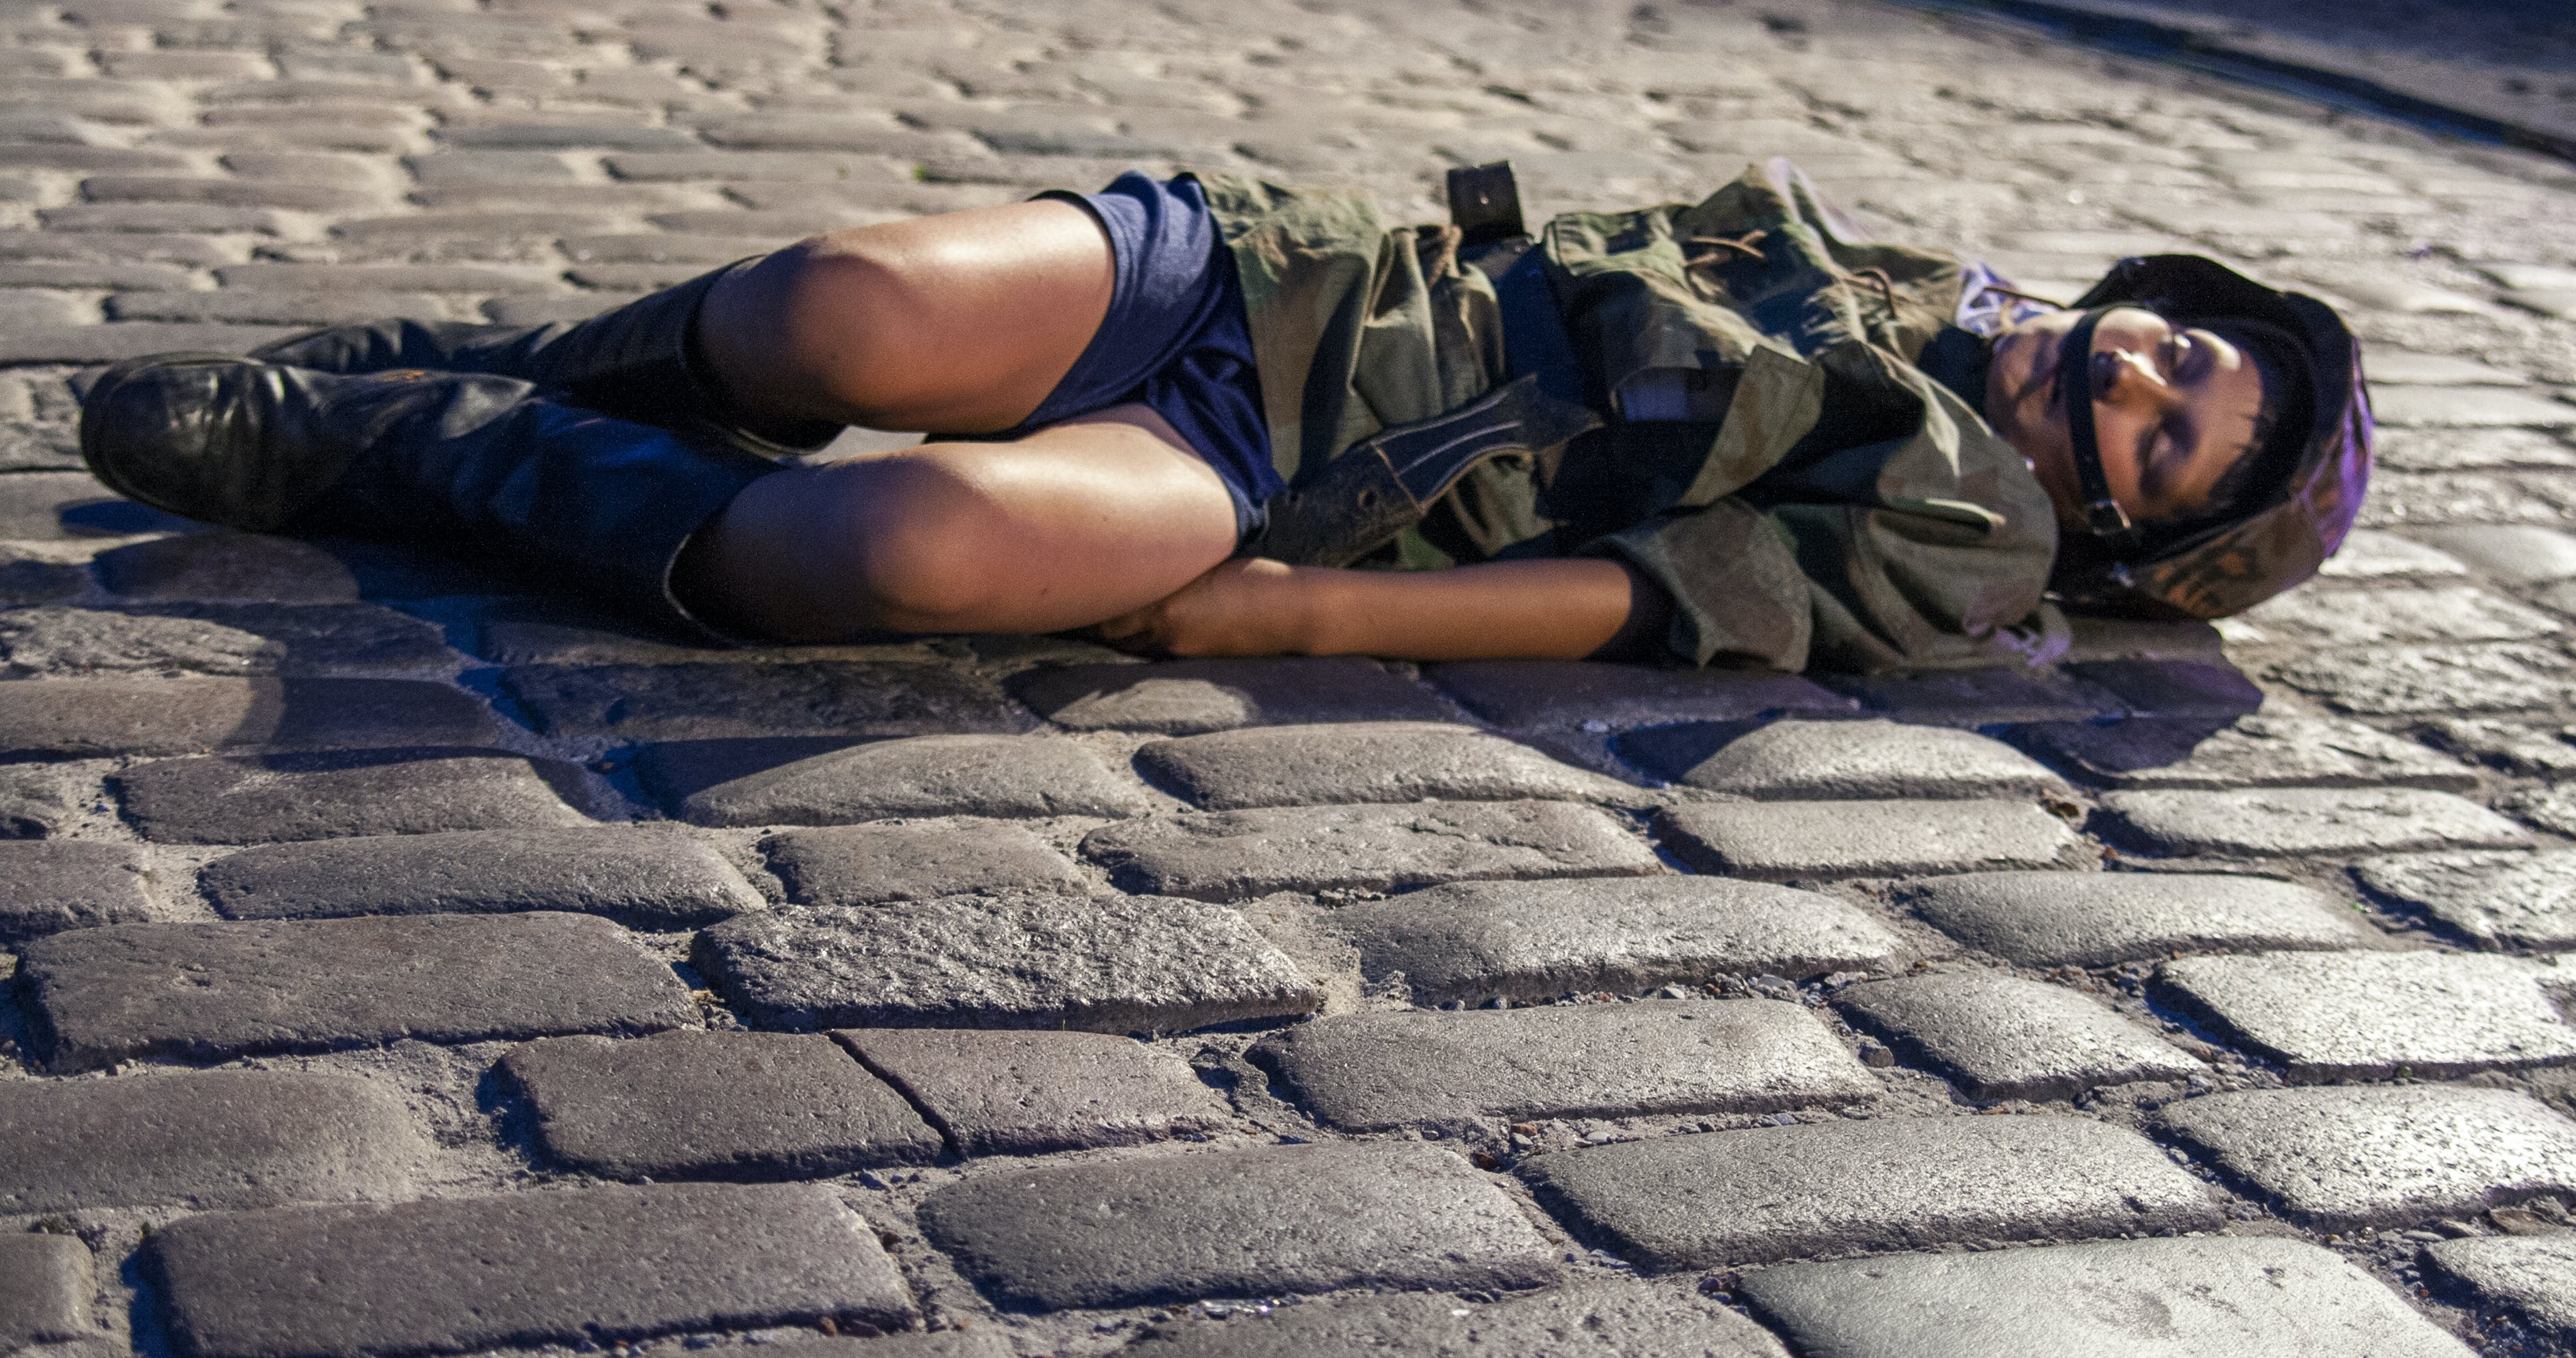 Free stock photo of killed, reconstruction, warsaw uprising, young soldier